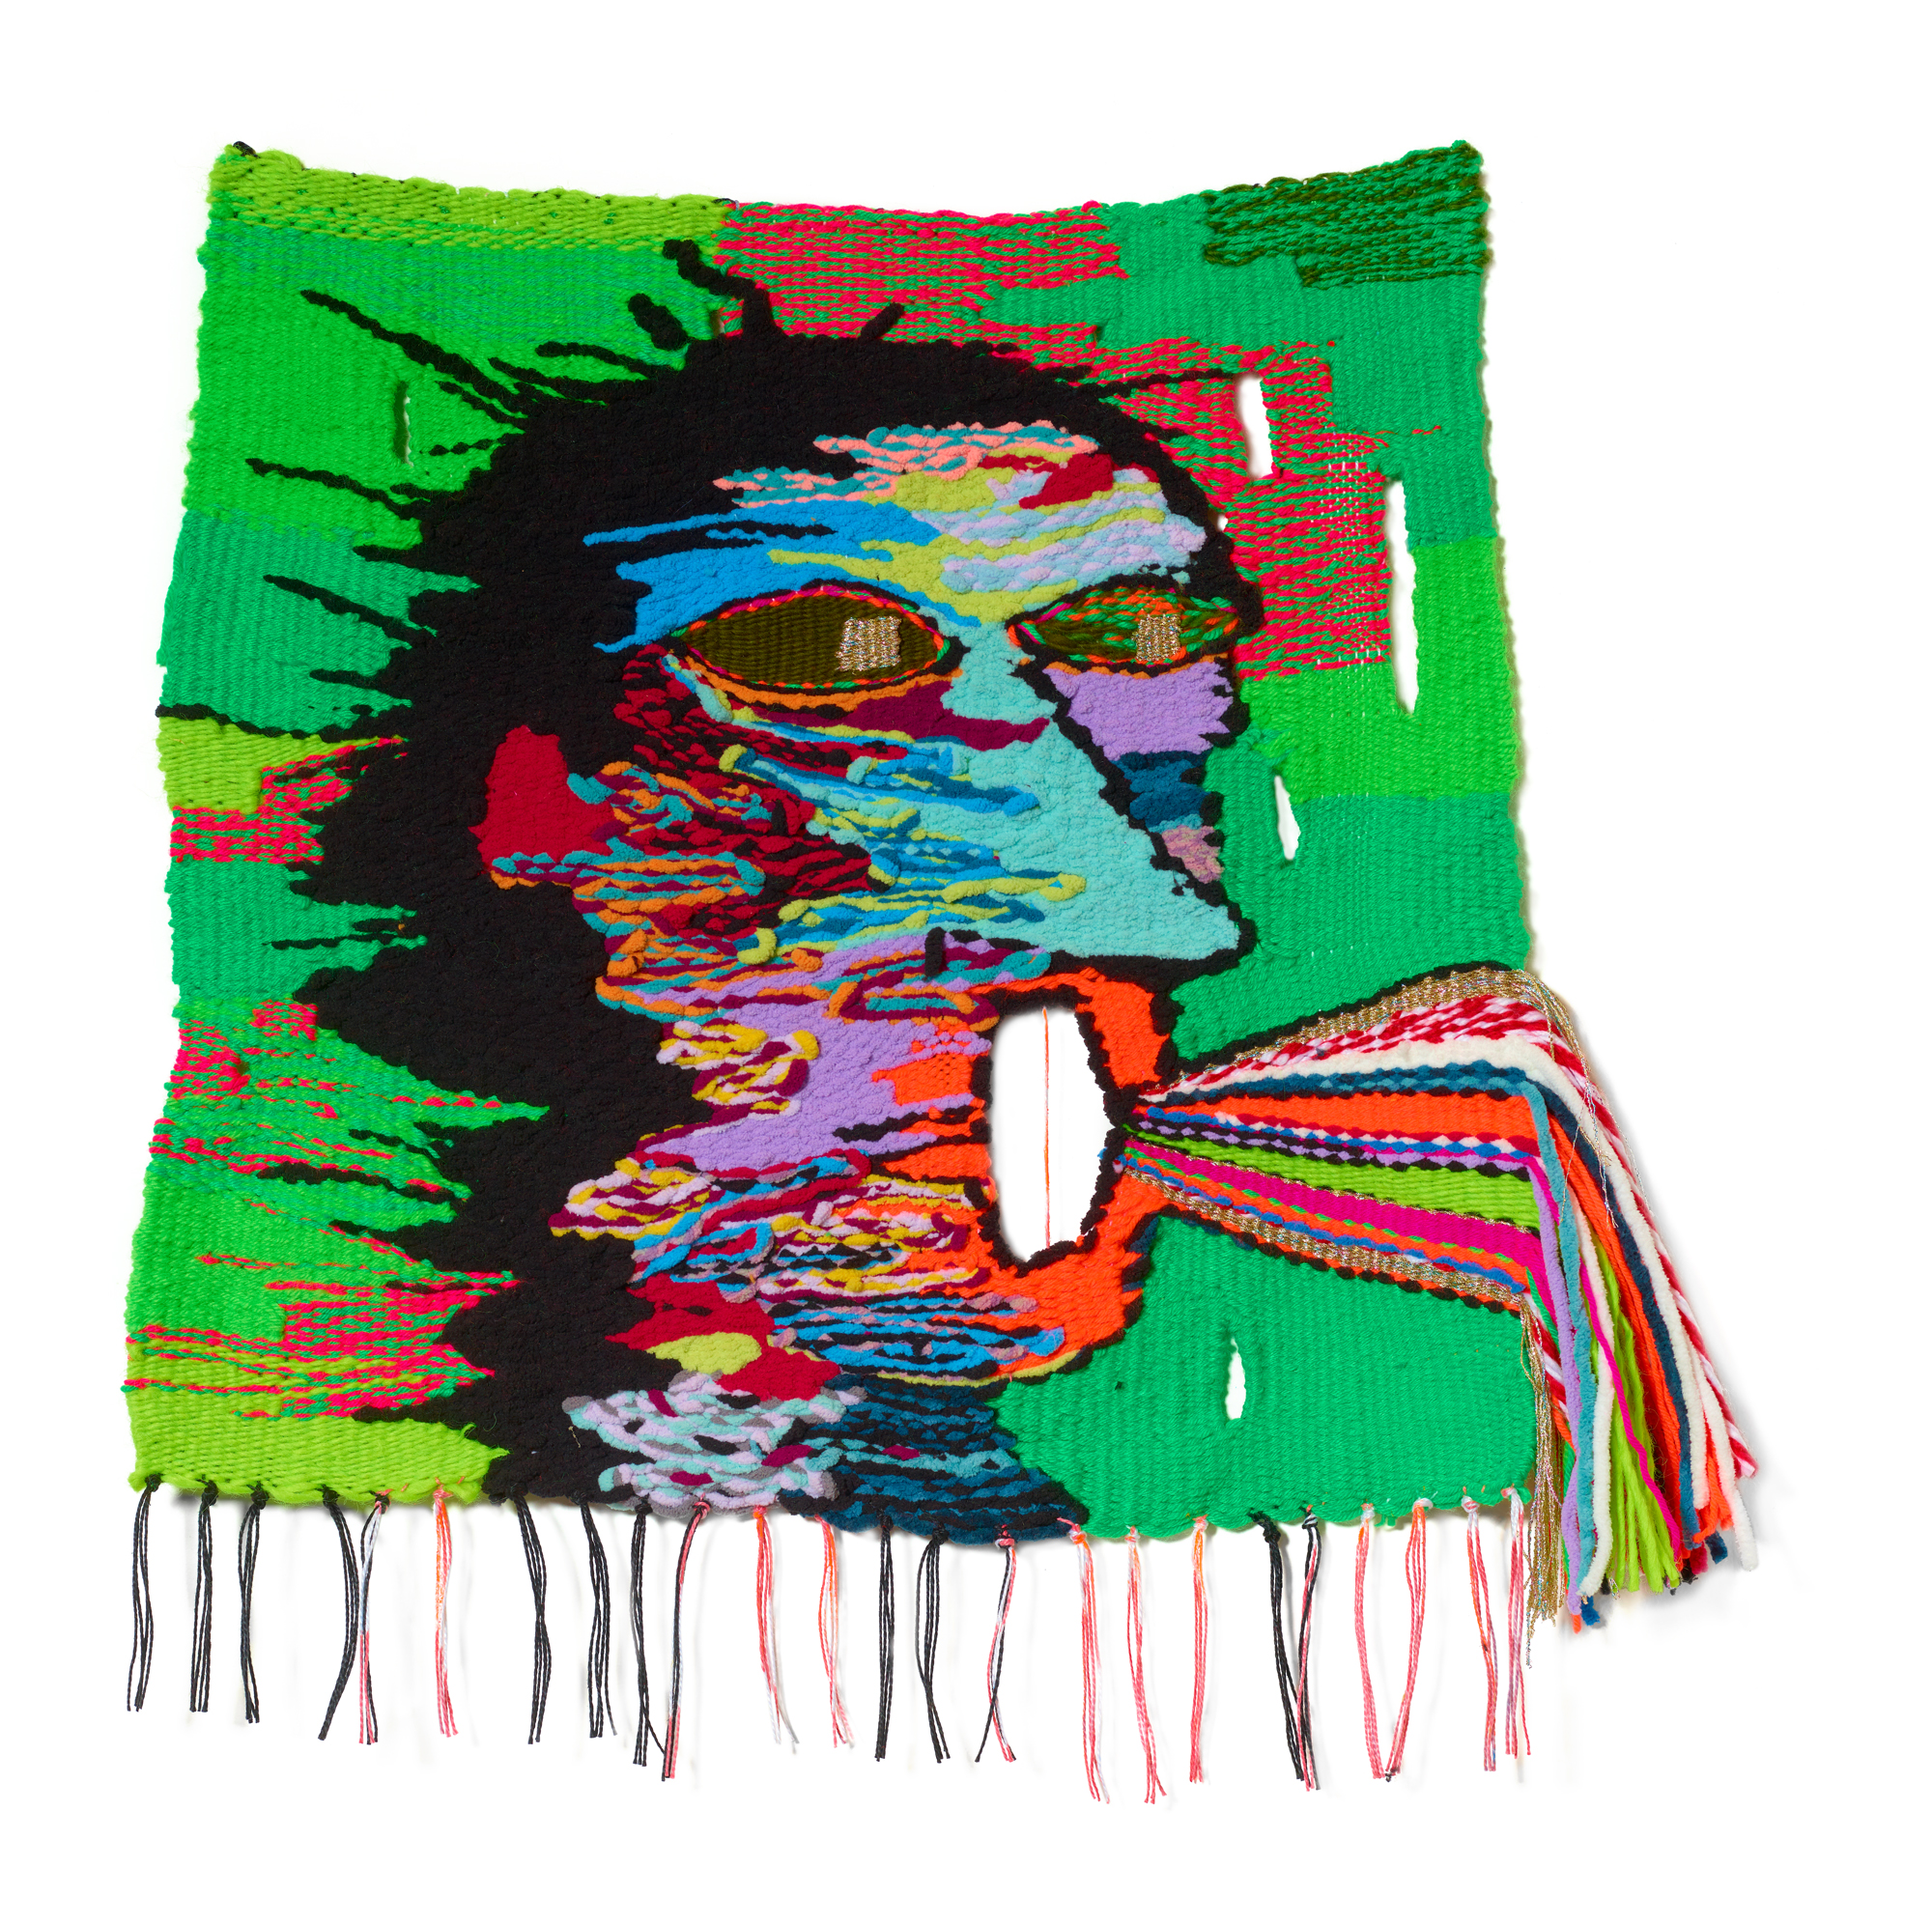 Singing off key, 2019, 25 x 19 in, wool, cotton, acrylic, polyester, metallic fibers